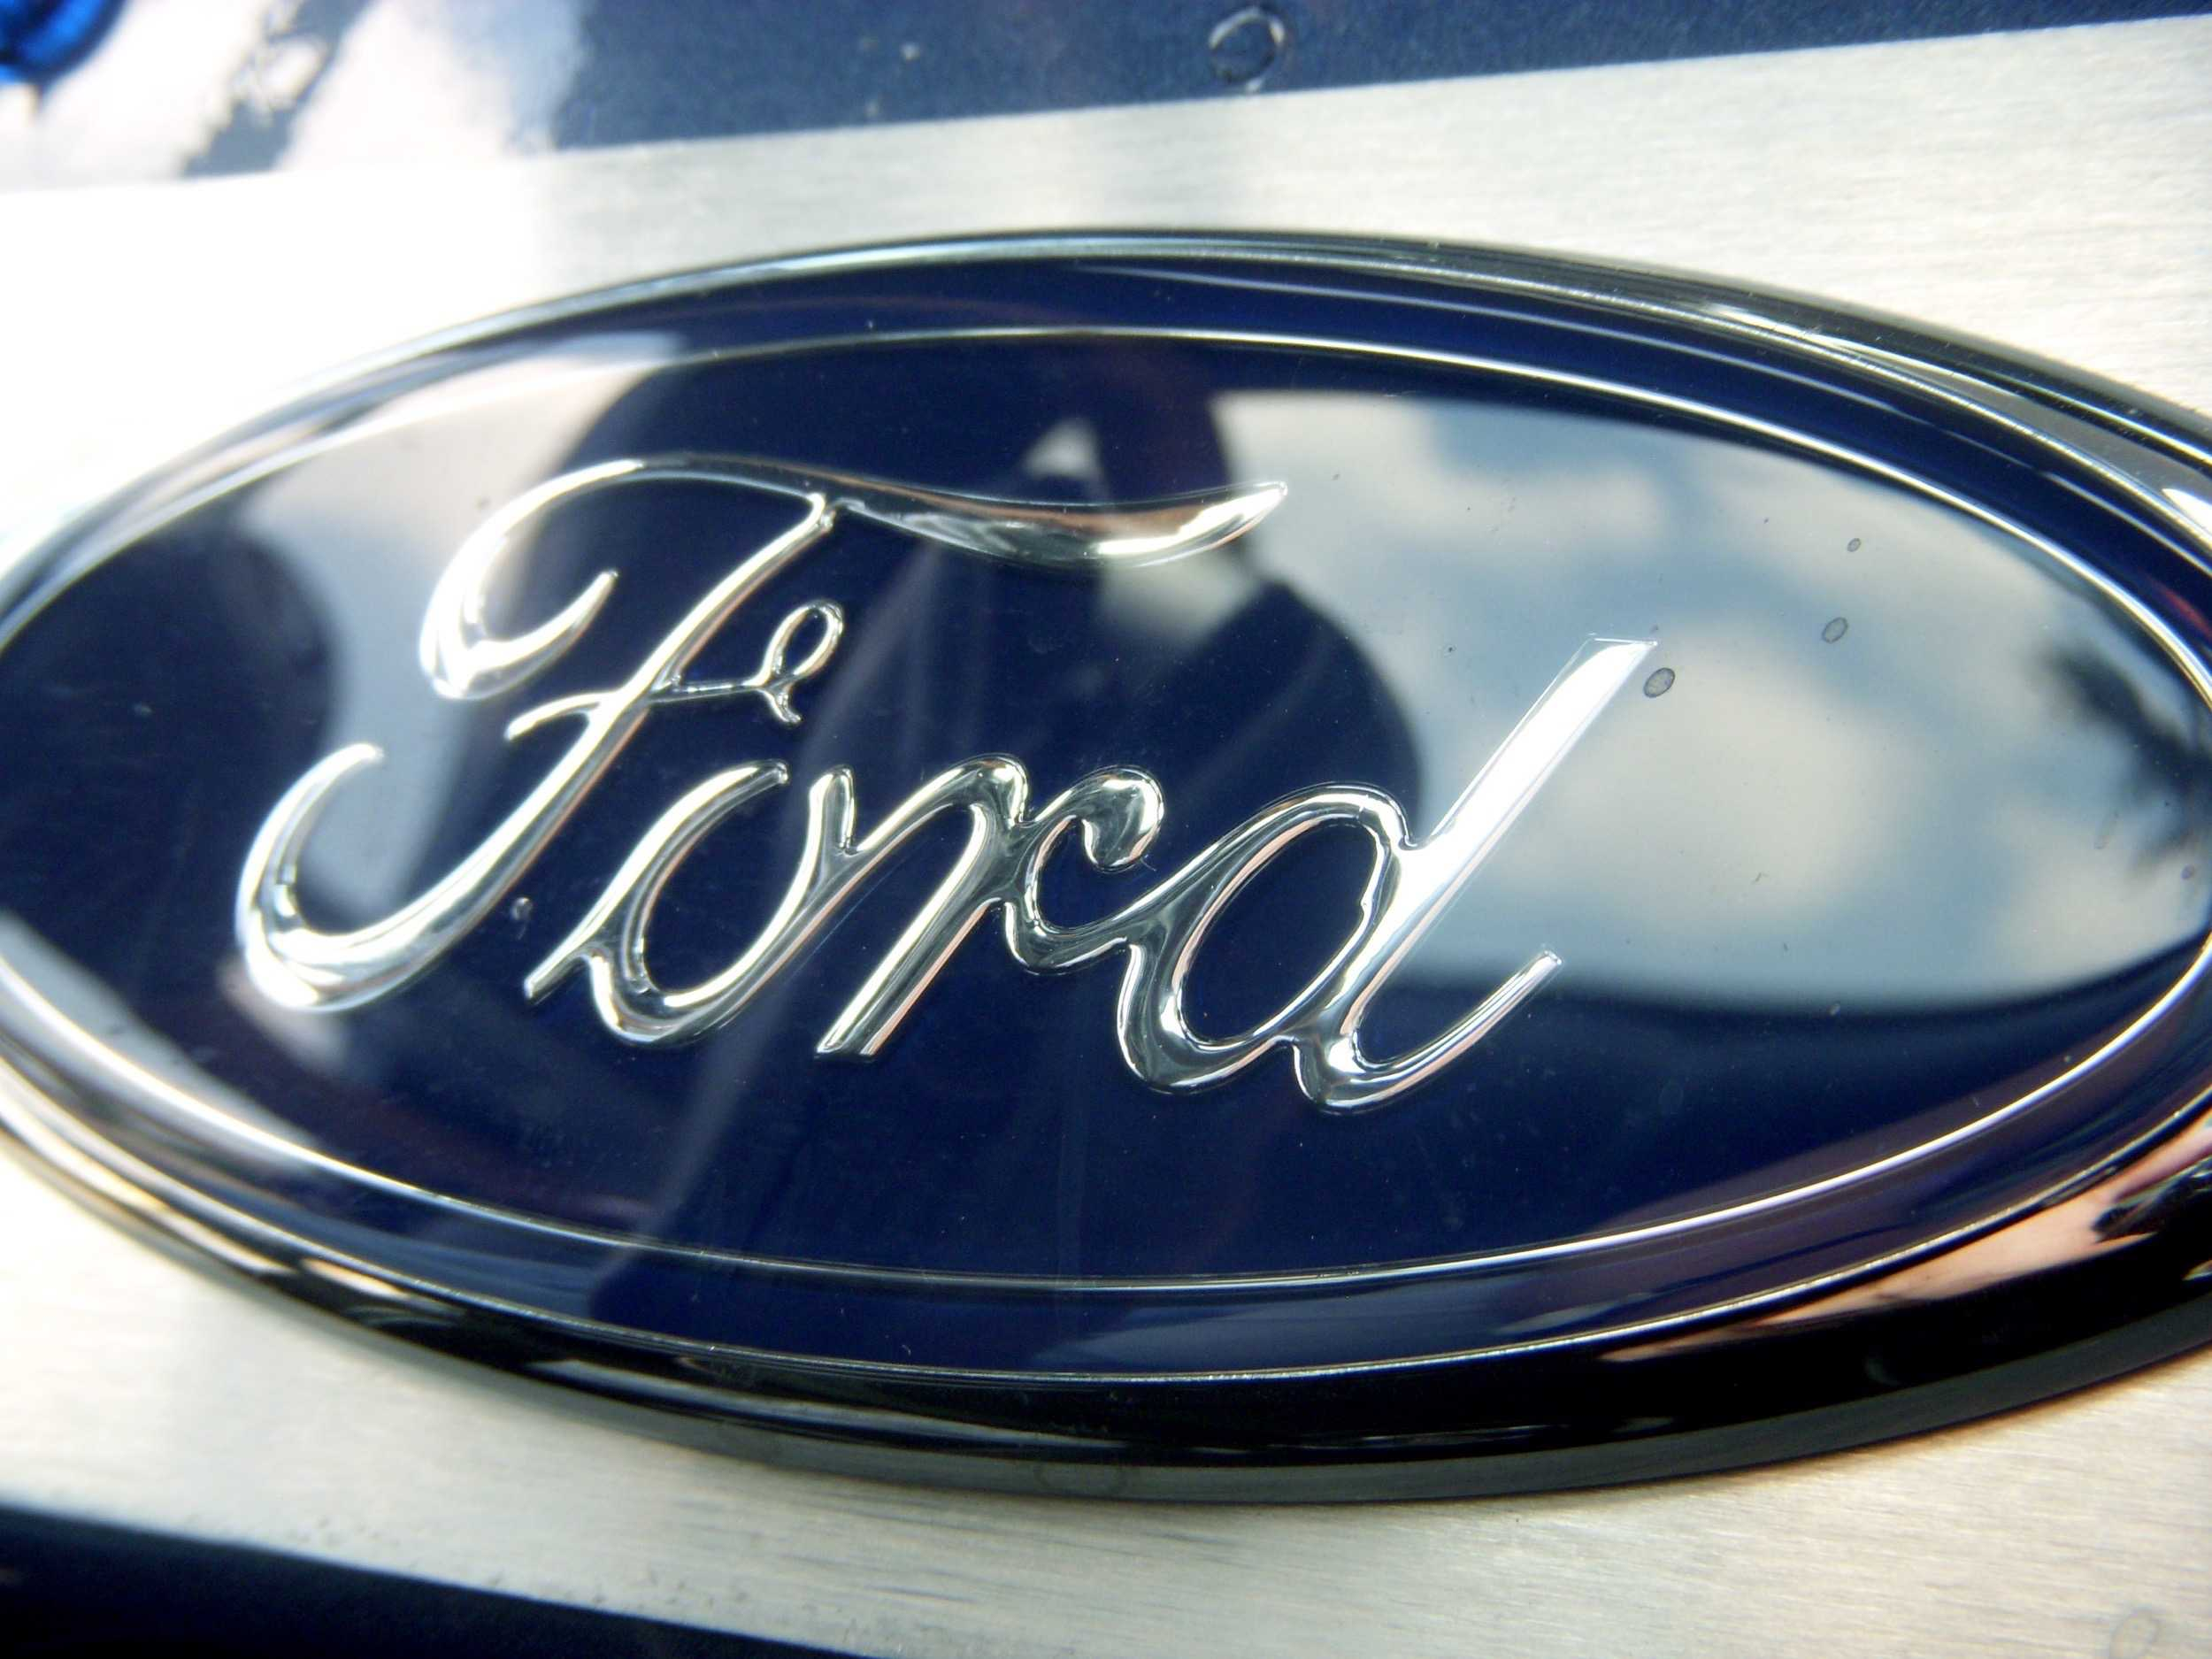 New Ford recall affecting 1 2 million vehicles - 95 3 MNC